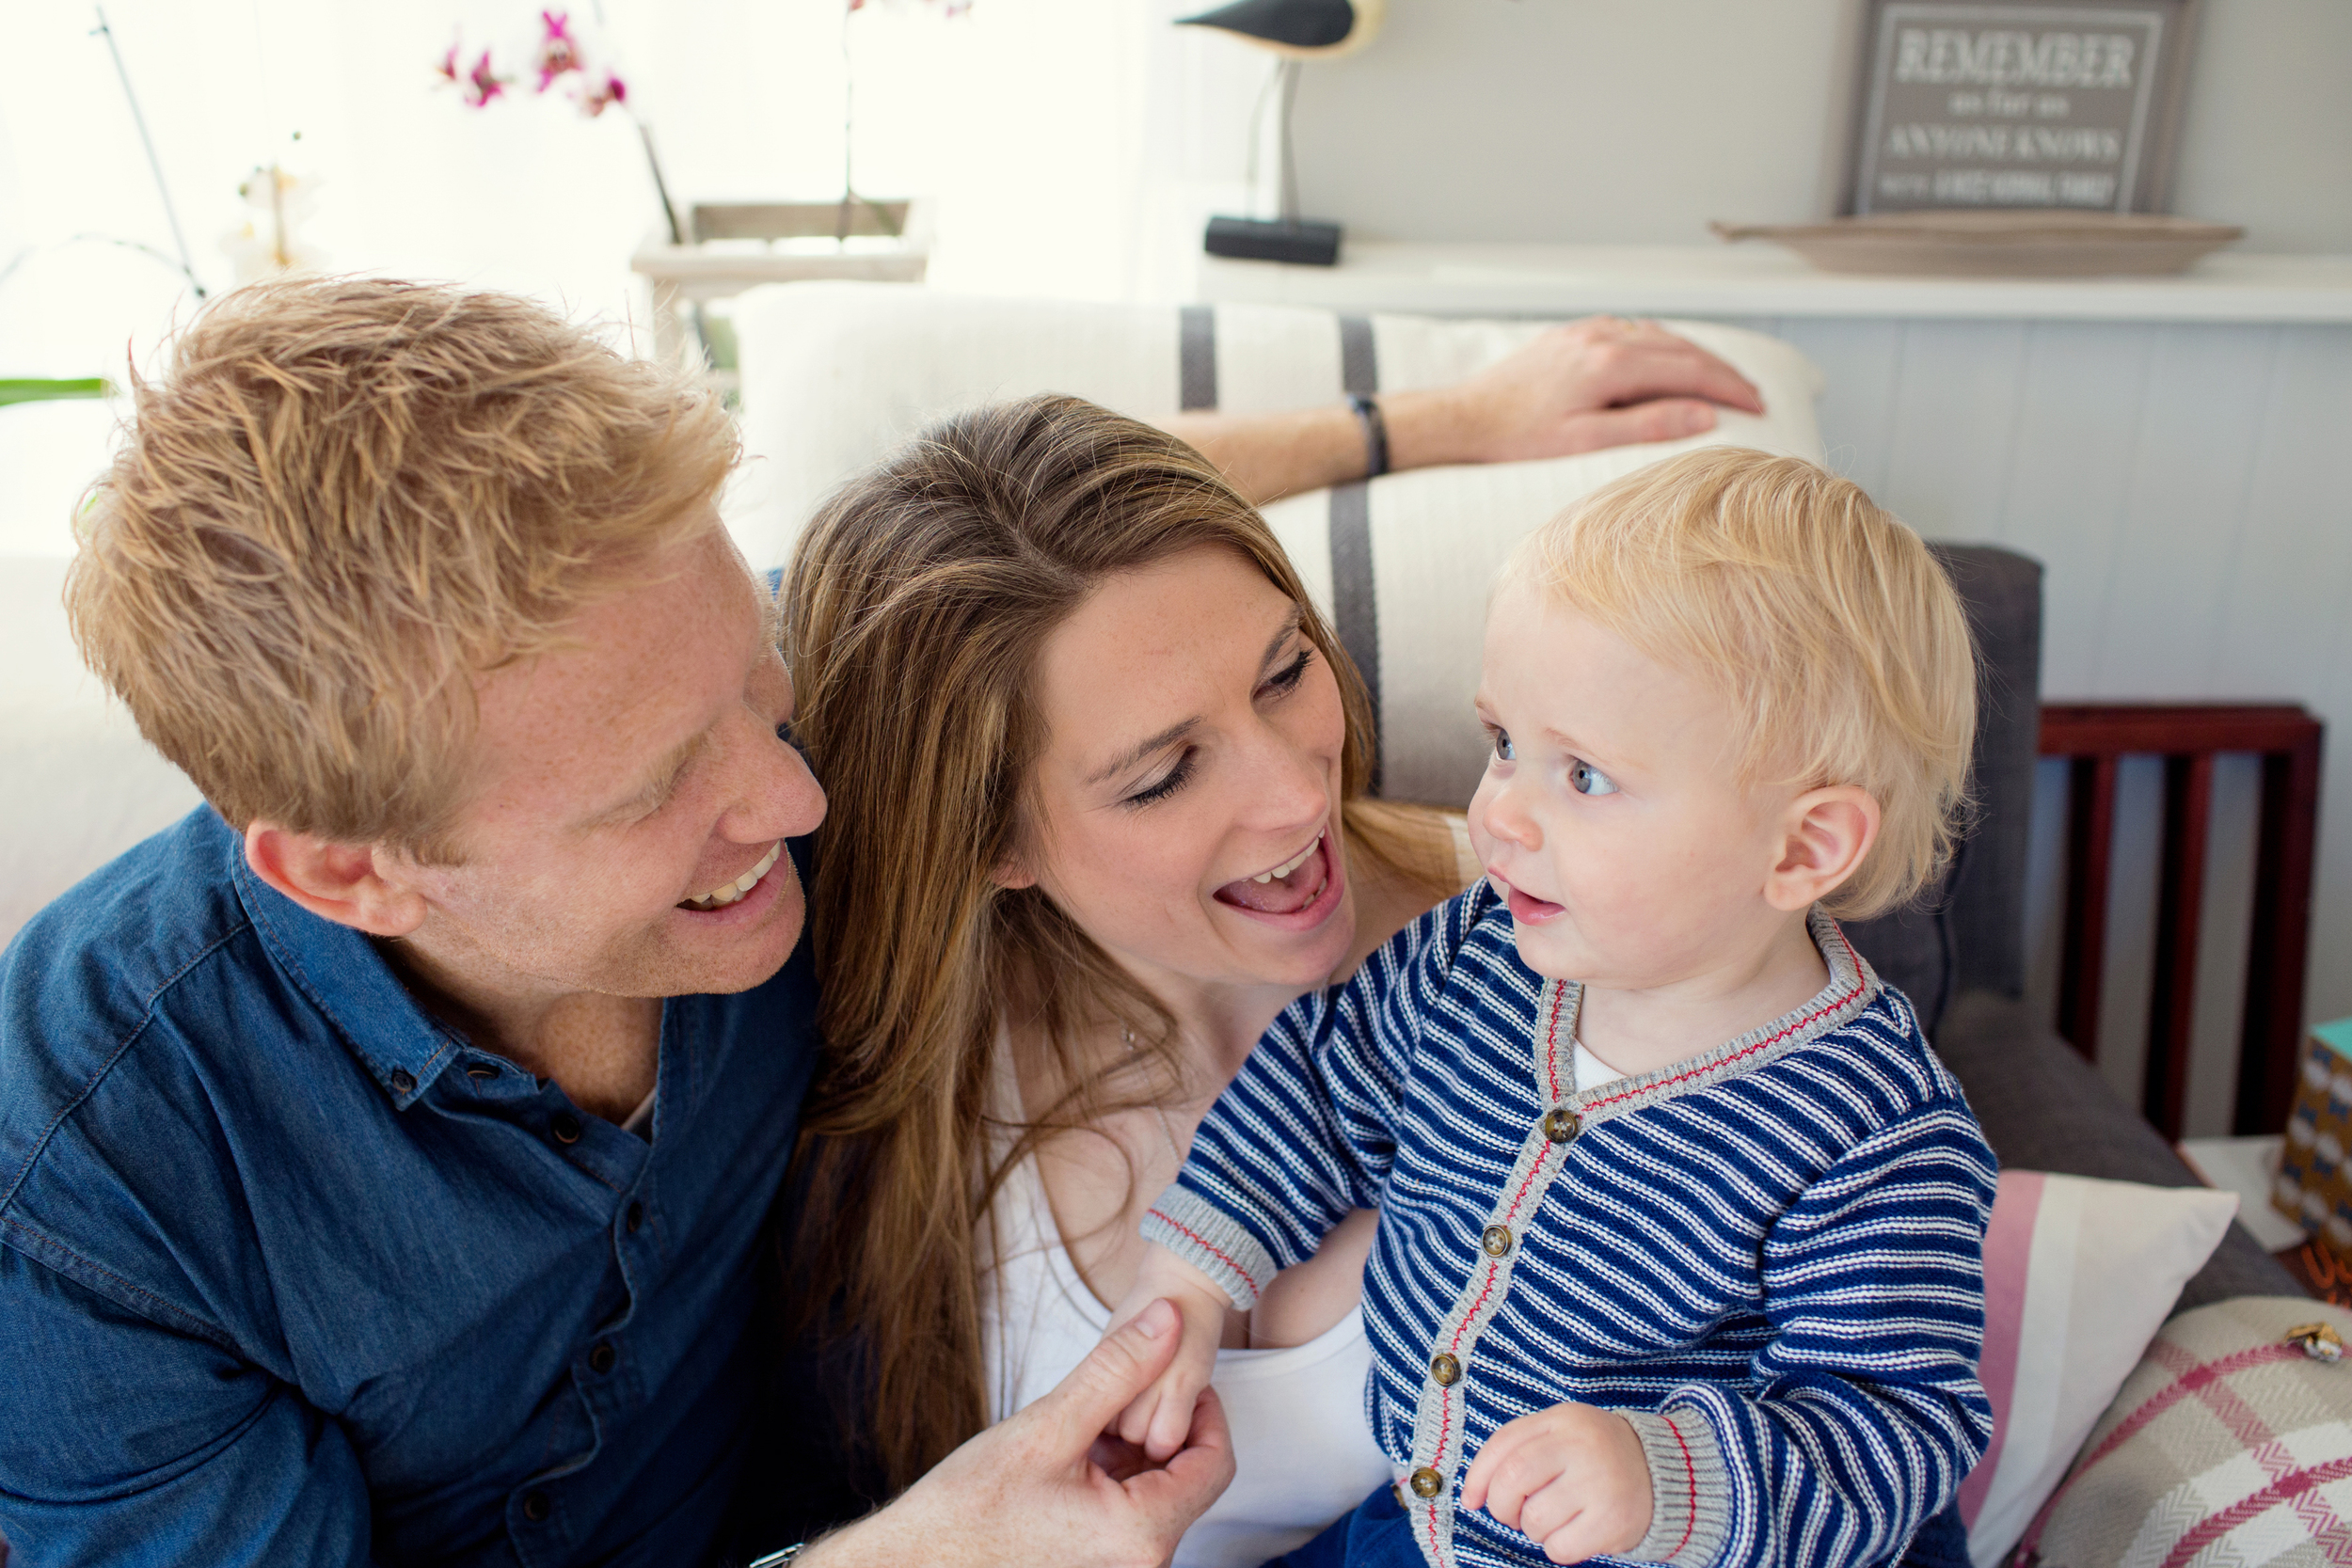 Lisa, Will & Louis_Sophie Evans photograpy, At home family shoot_142.jpg